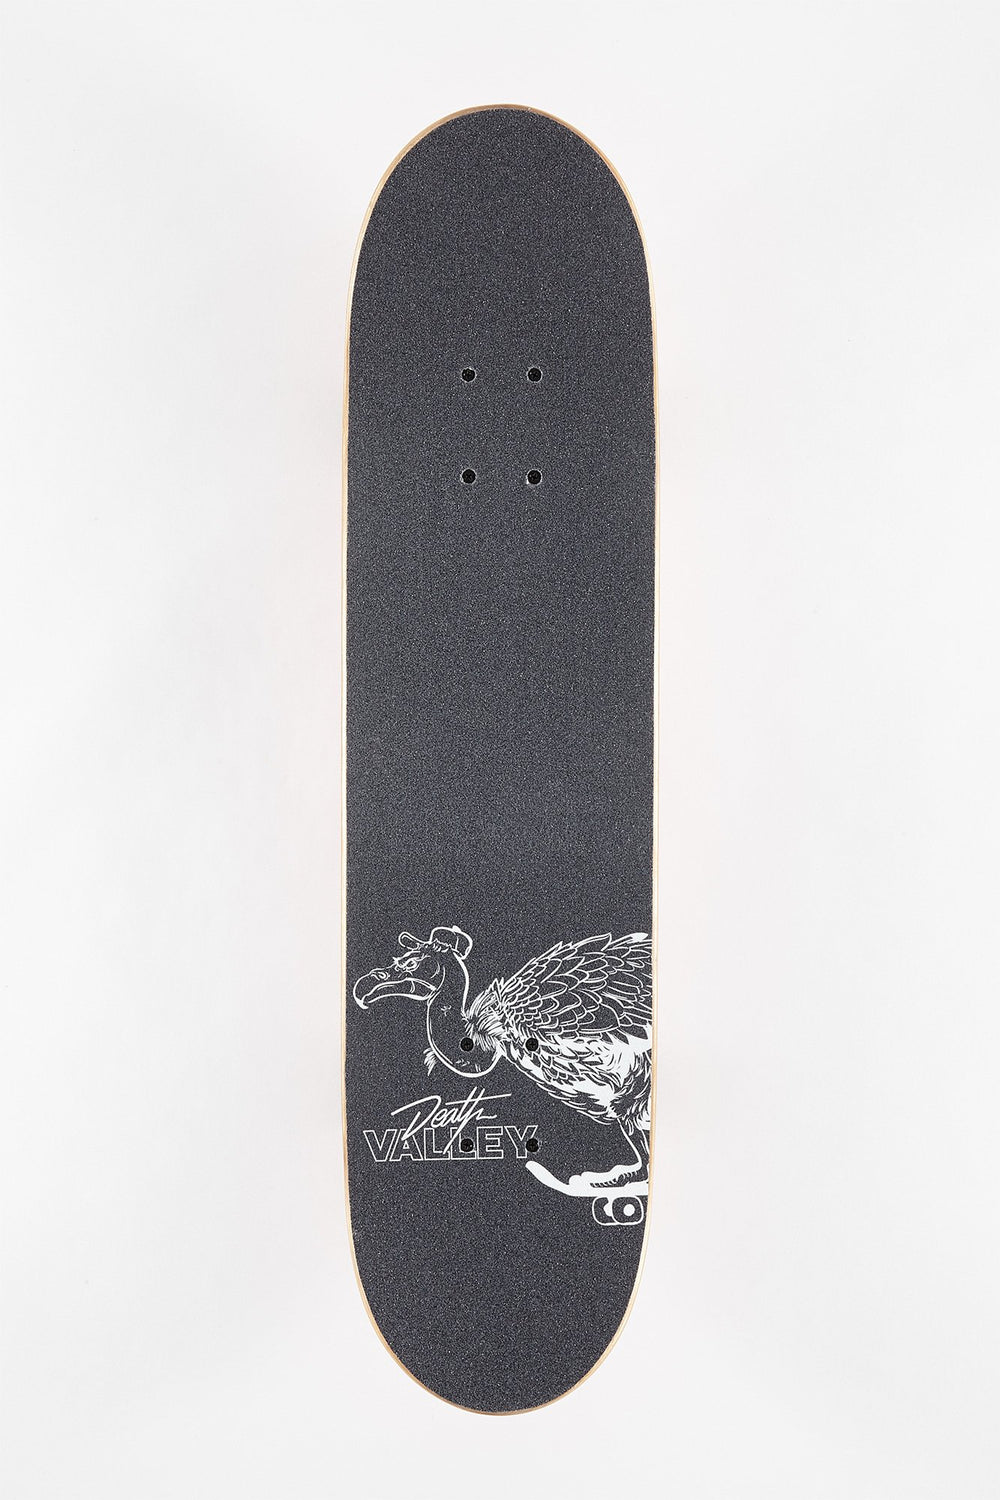 Death Valley Vulture Skateboard 7.75